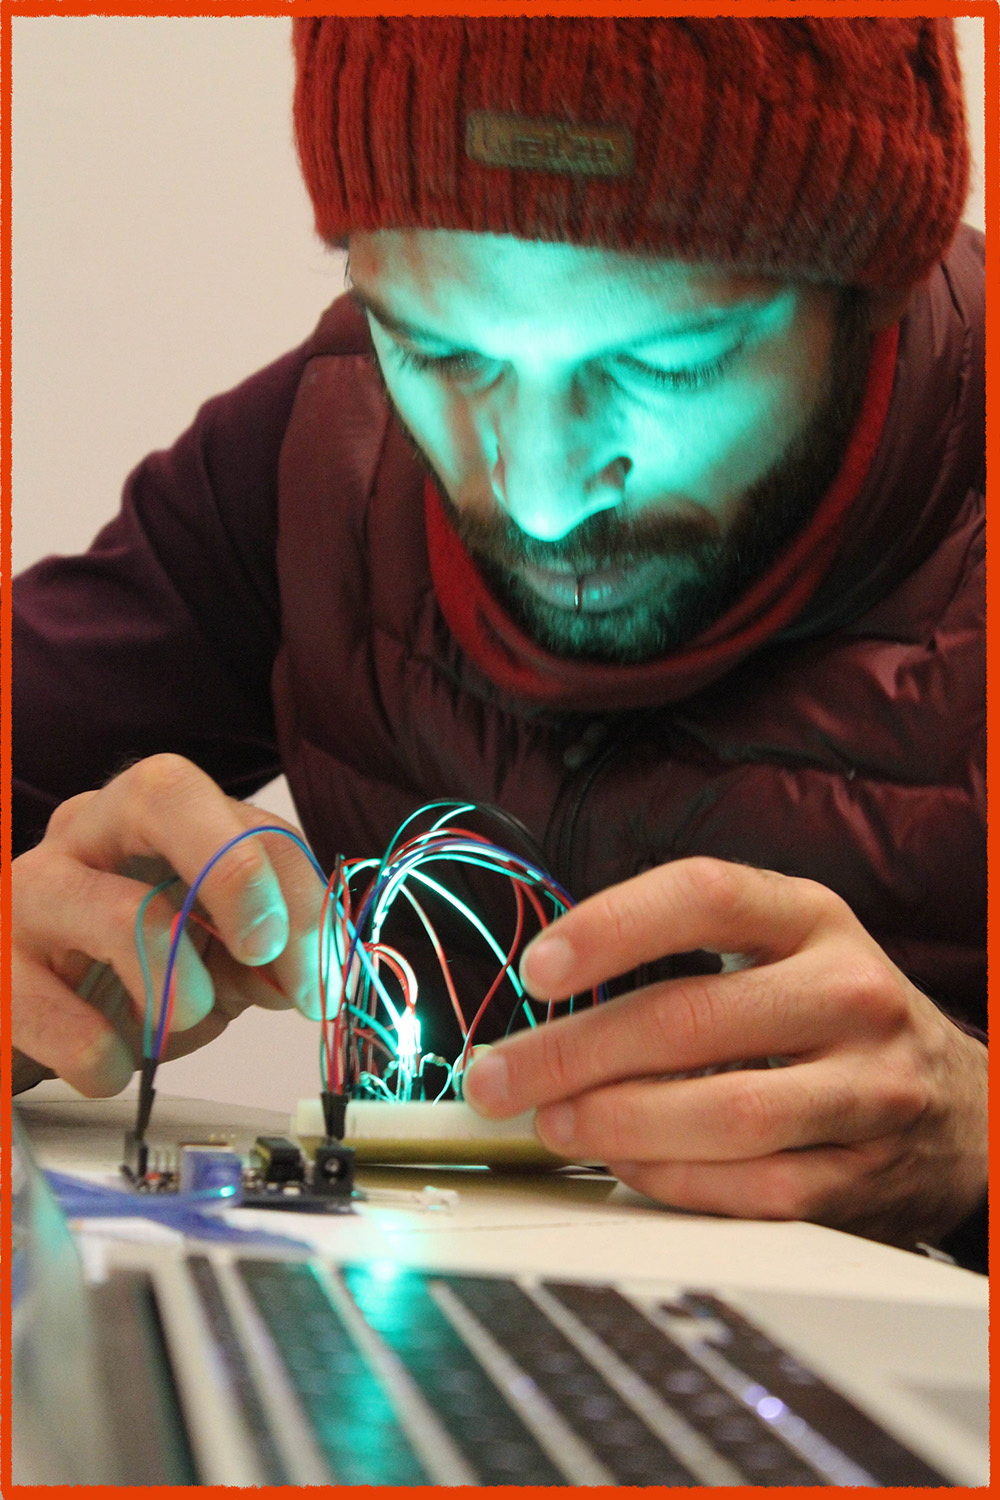 STEAM-workshops-dublin-creativity-technology-electronics-science-arduino-makey-makey